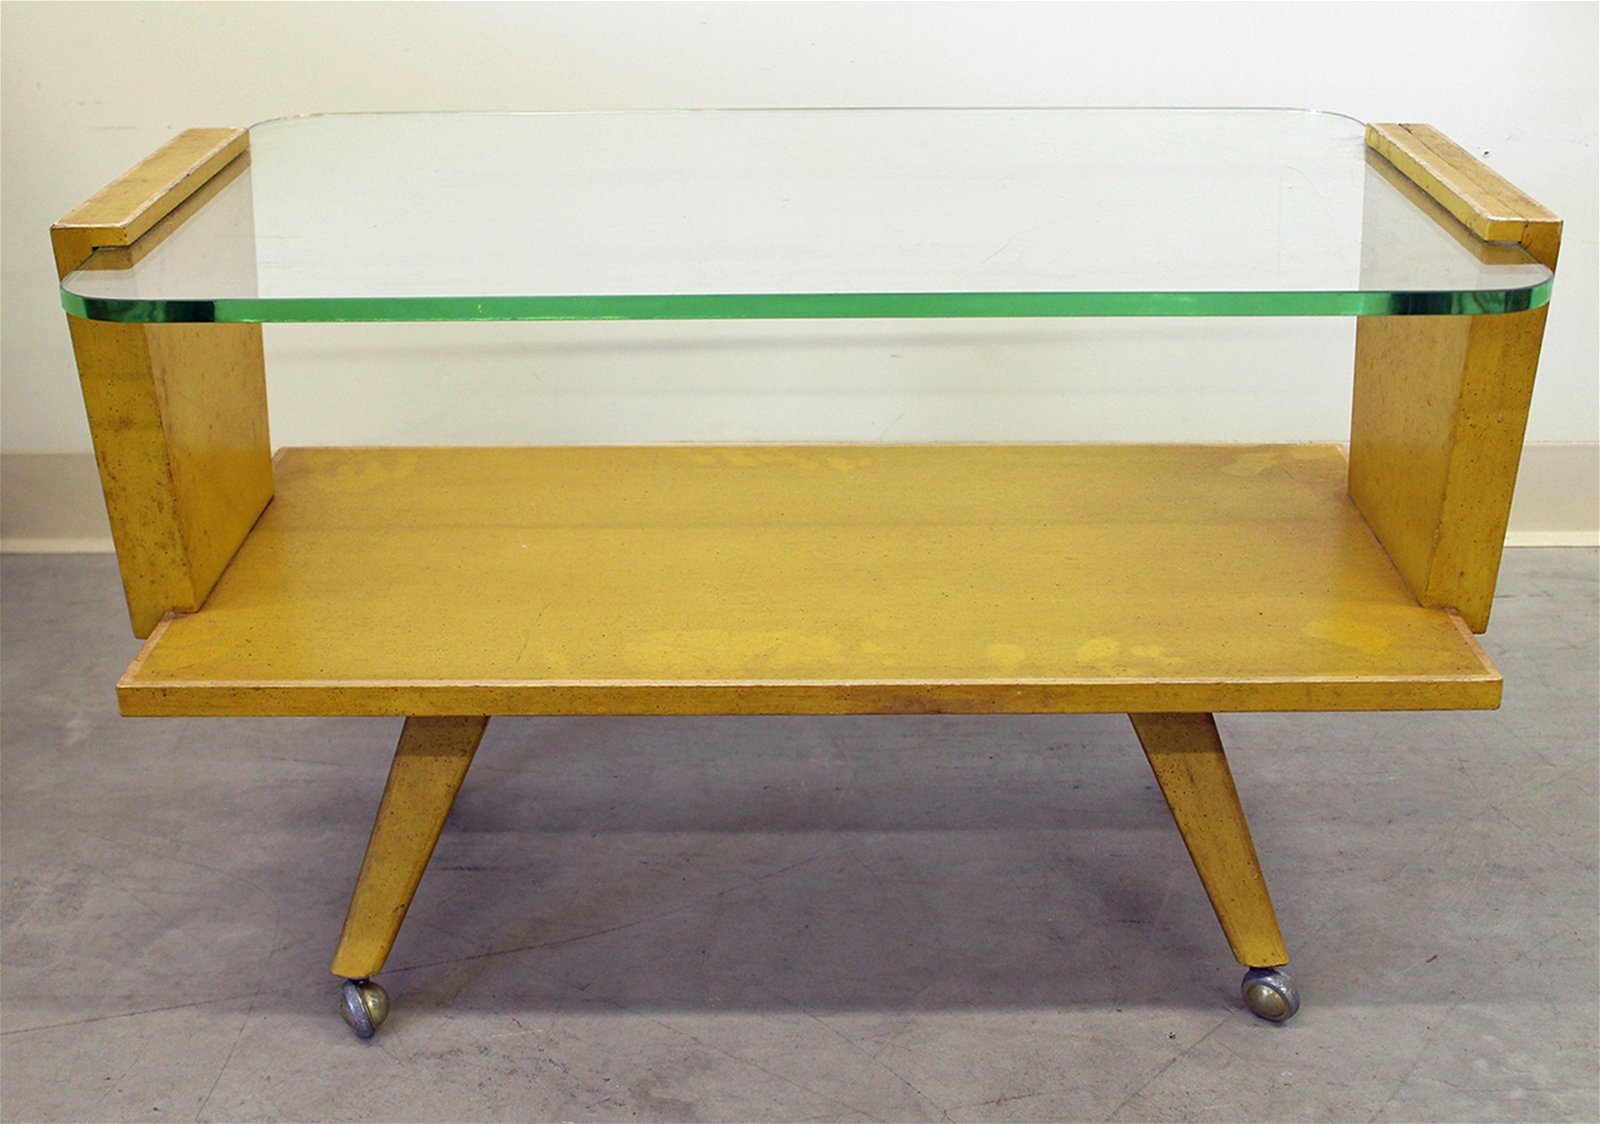 MID CENTURY MODERN VLADIMIR KAGAN TABLE